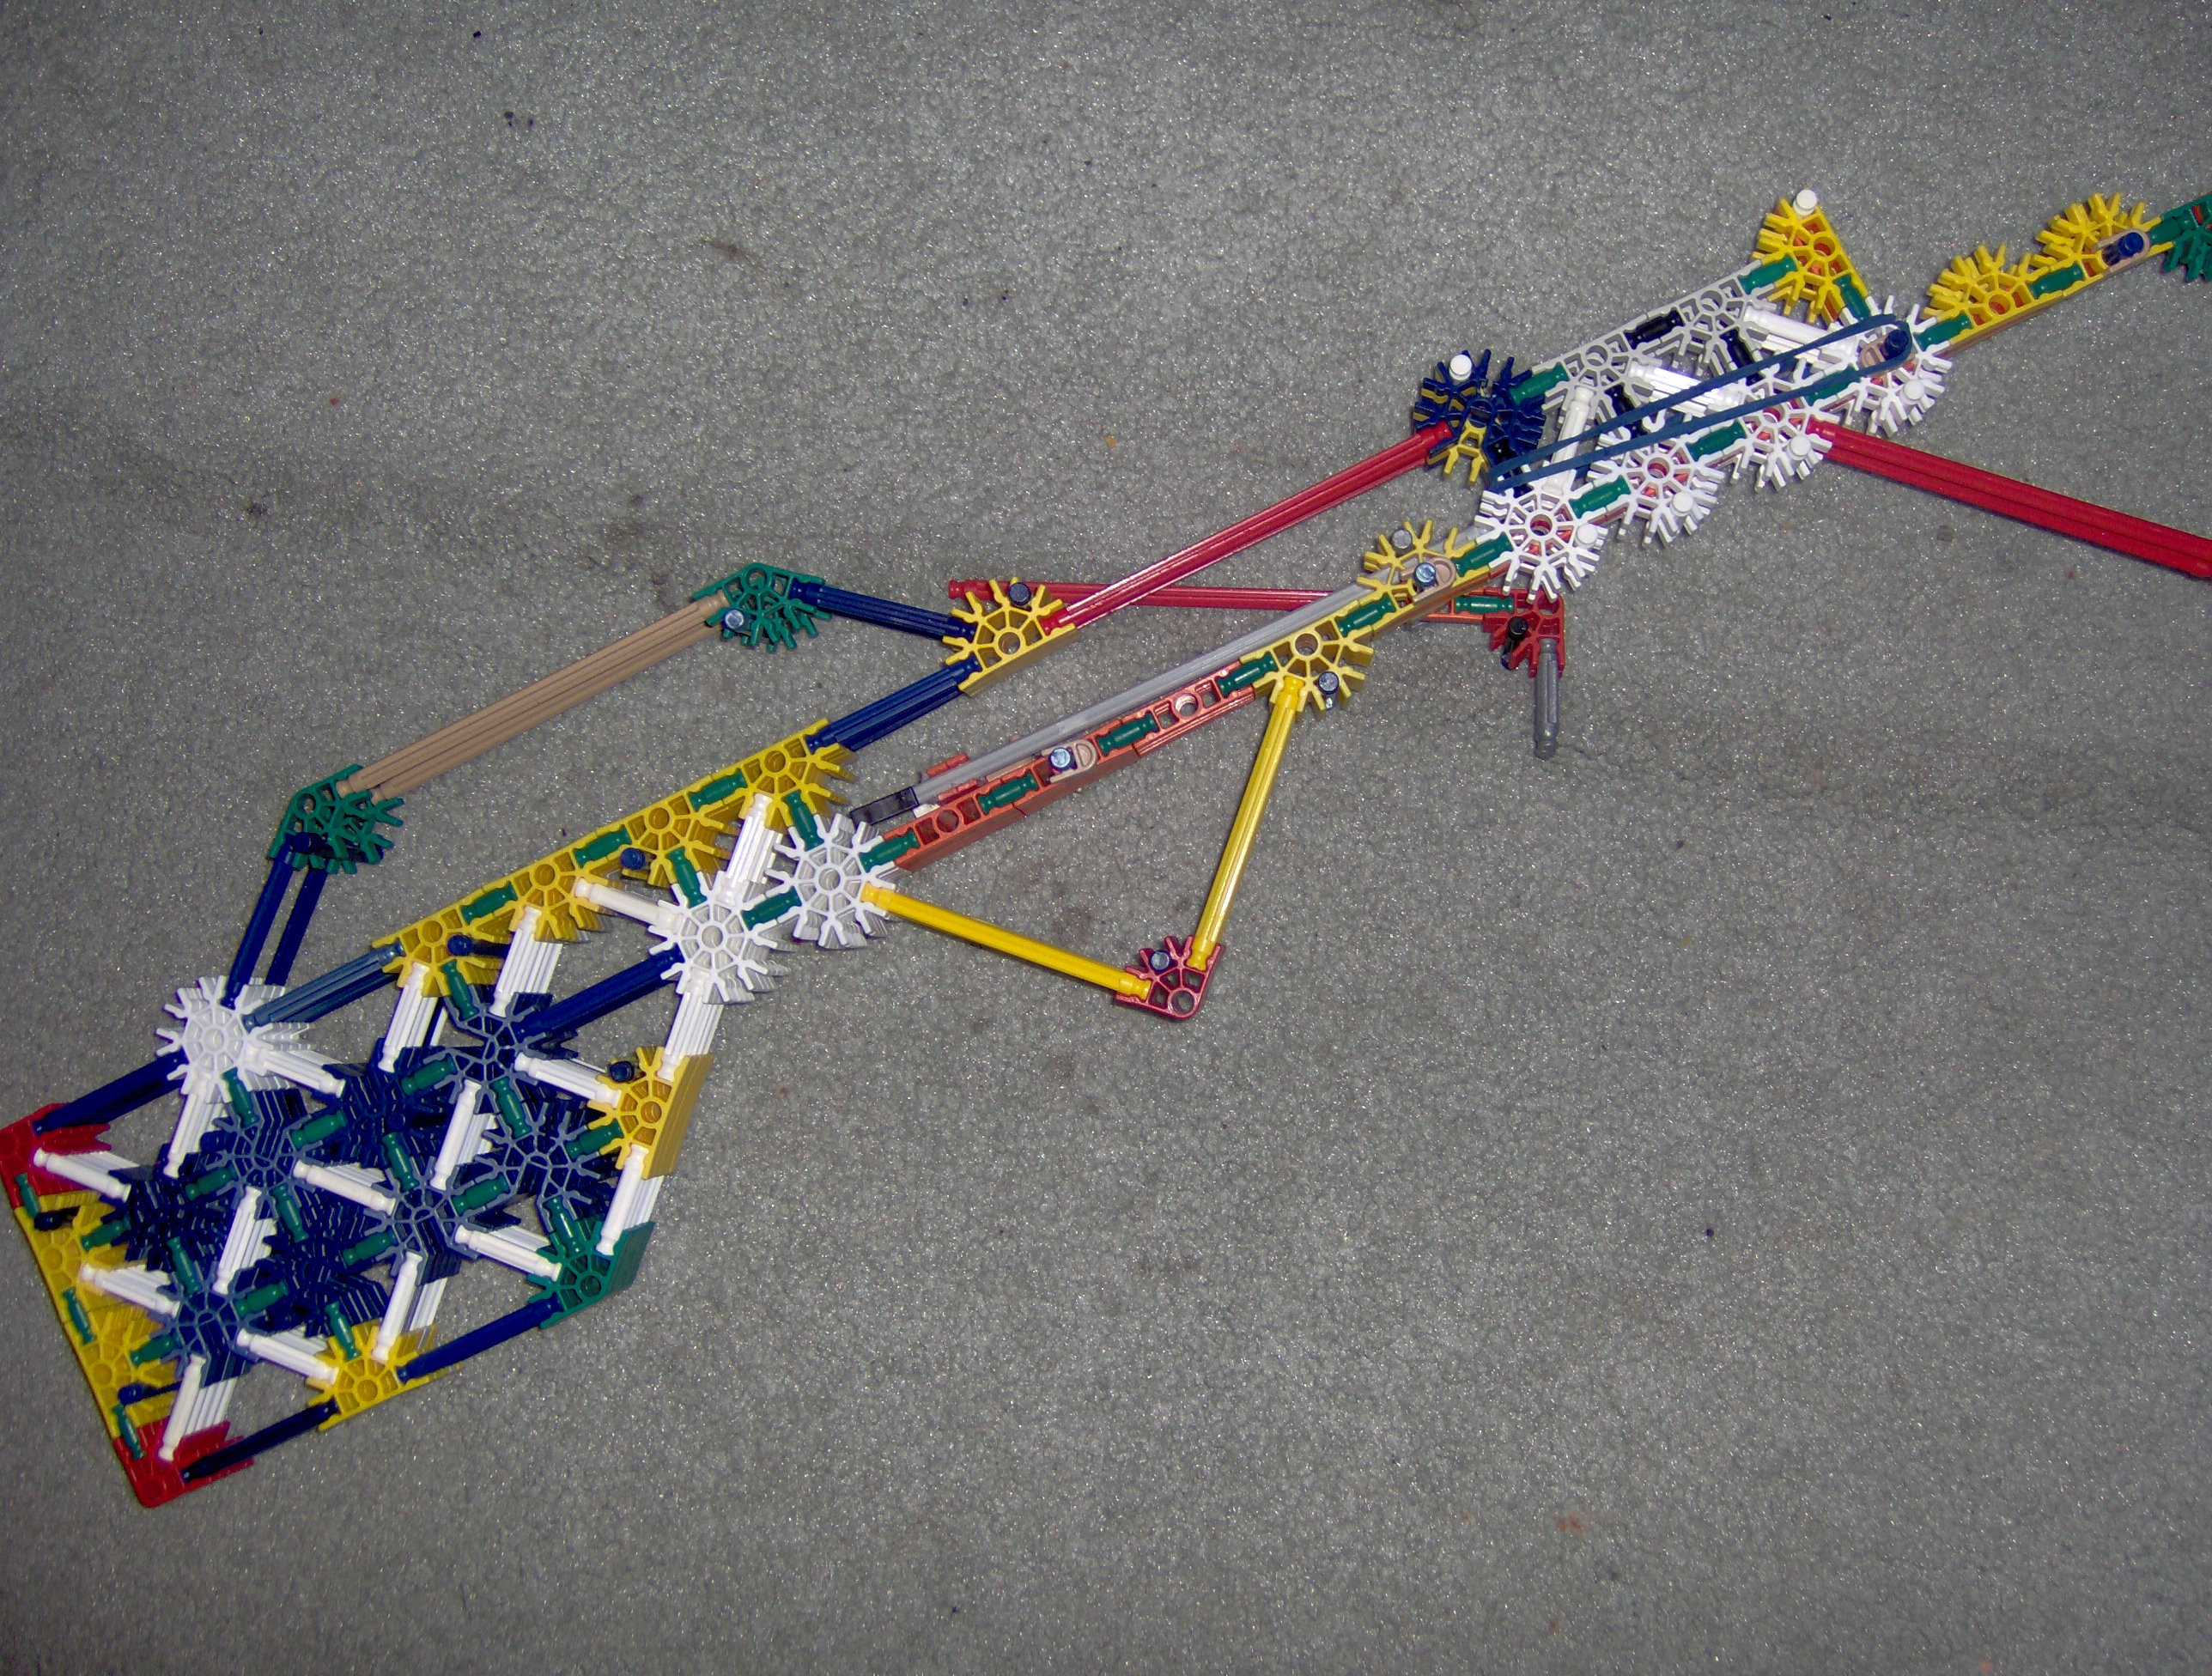 Make An SL9 Assualt Rifle Using K'nex